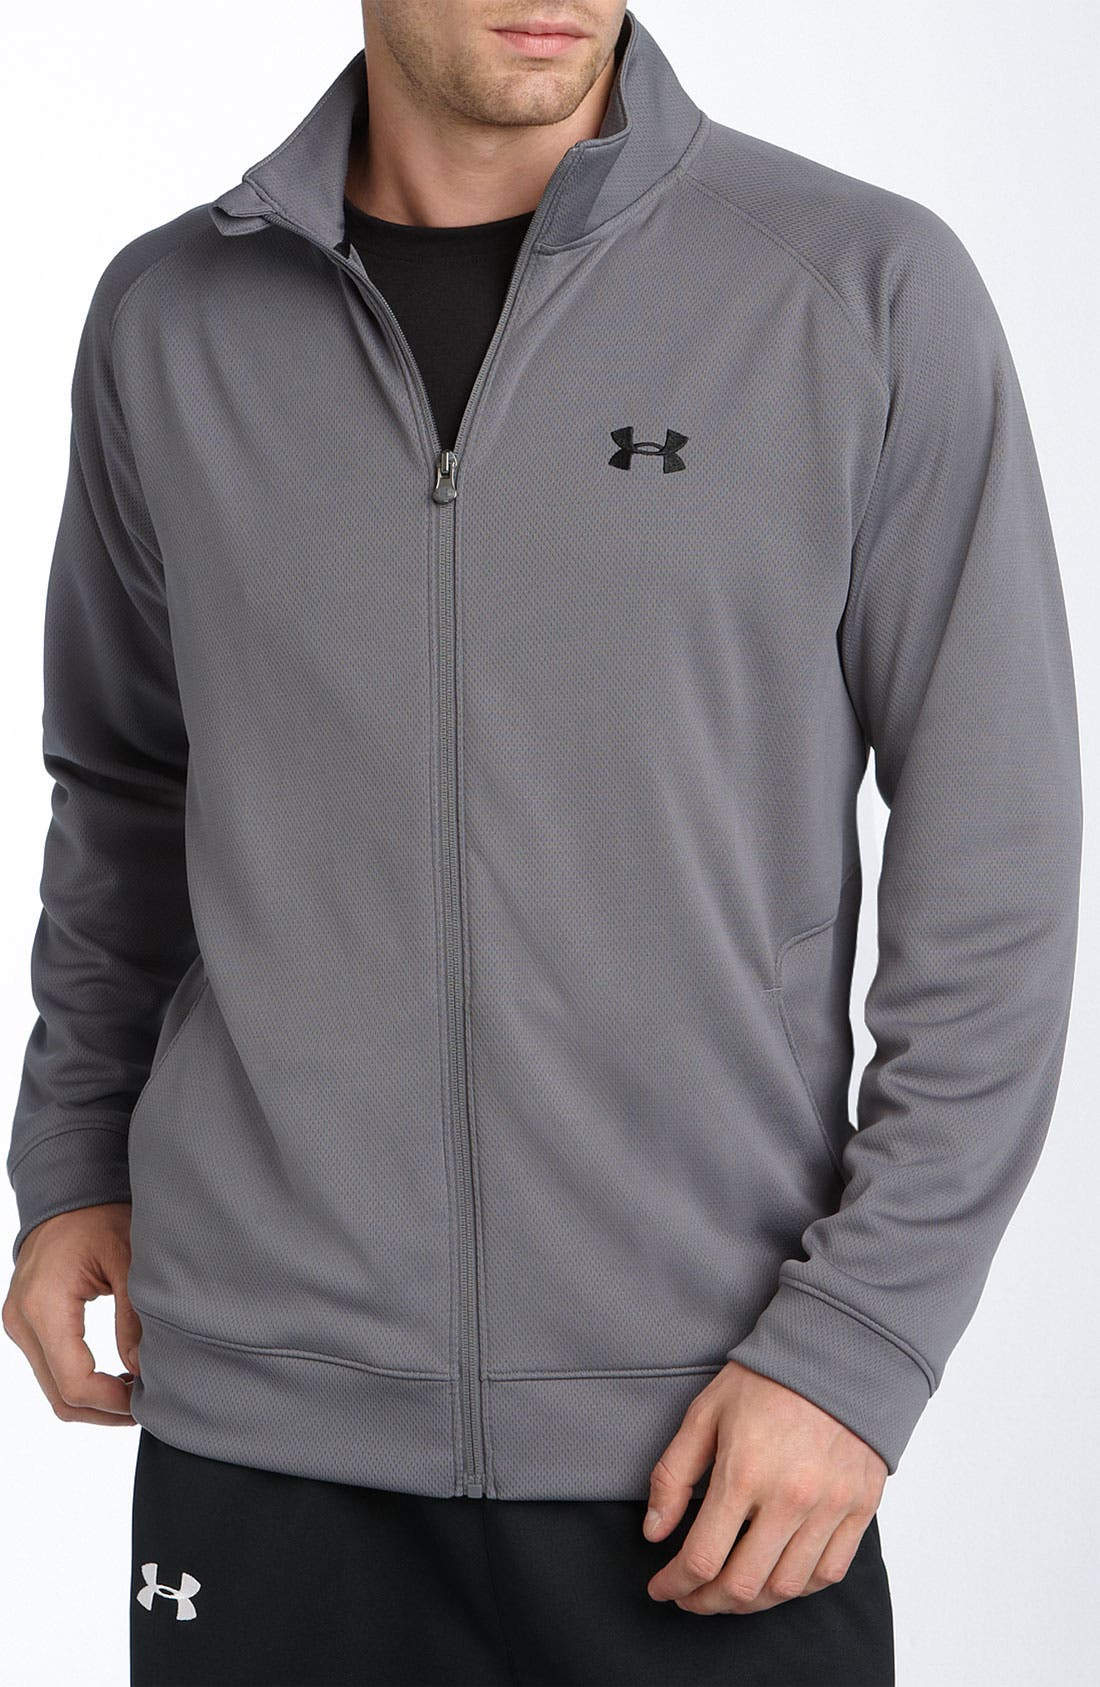 Main Image - Under Armour 'Flex' ColdGear® Jacket